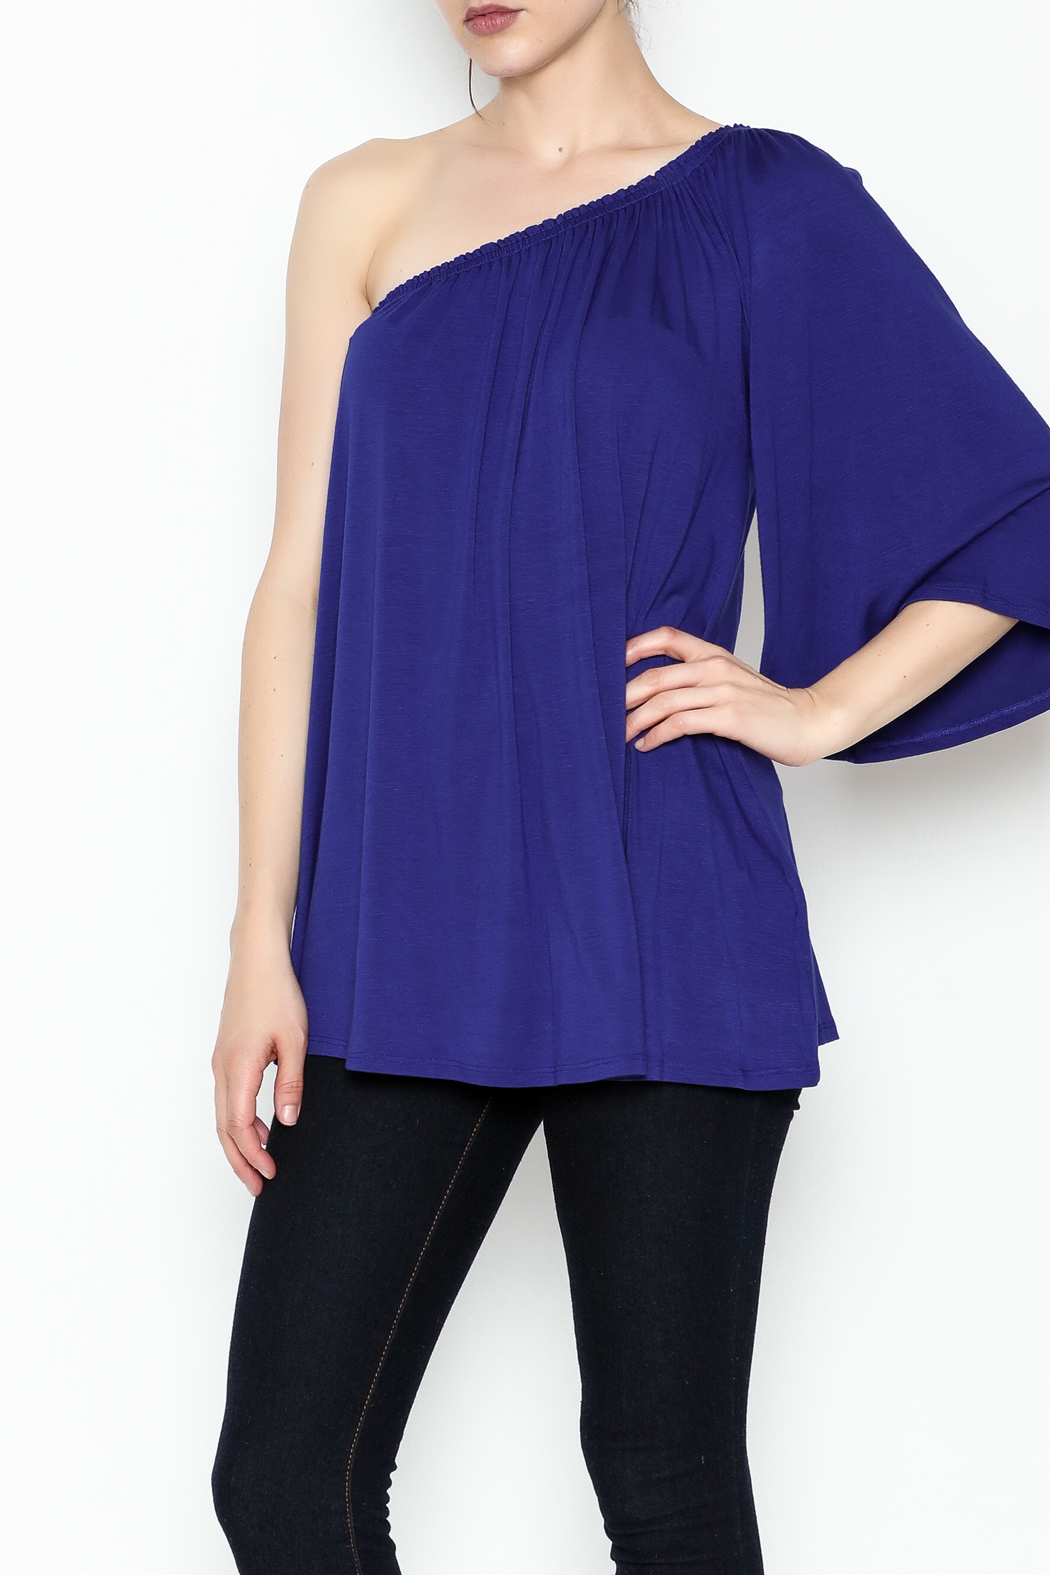 Hourglass Lilly One Shoulder Top - Main Image